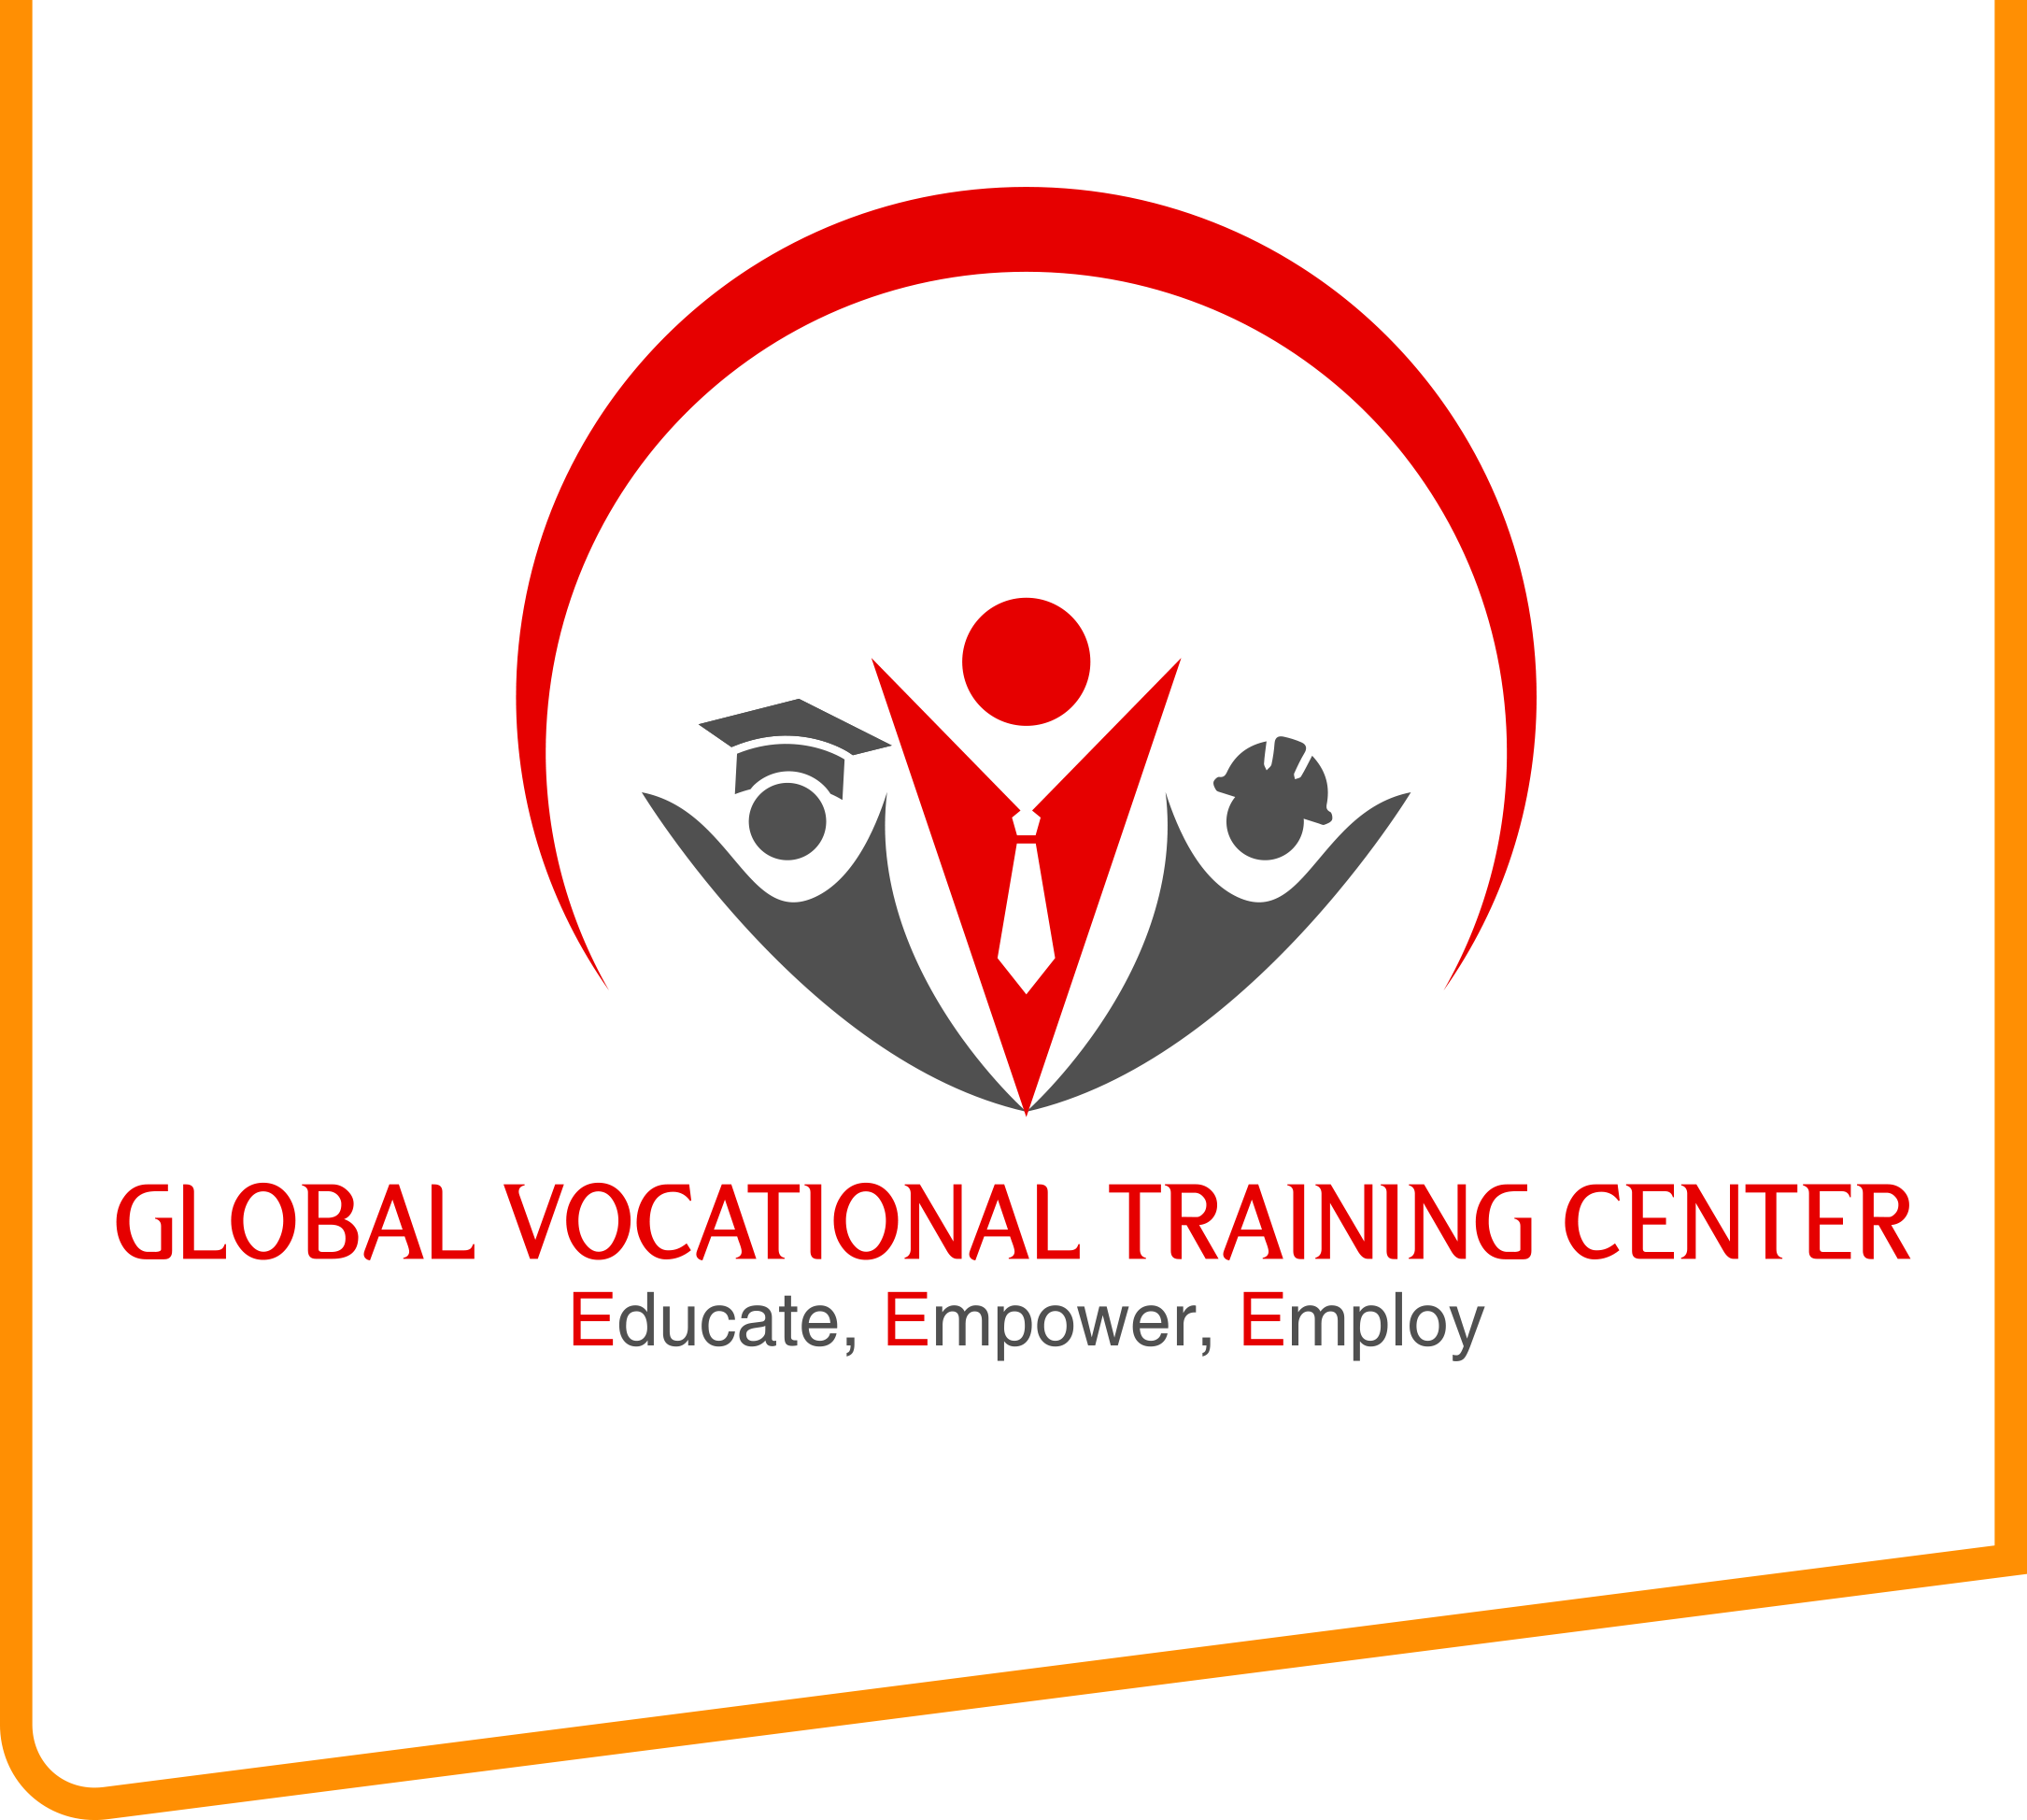 Educate, Empower, Employ